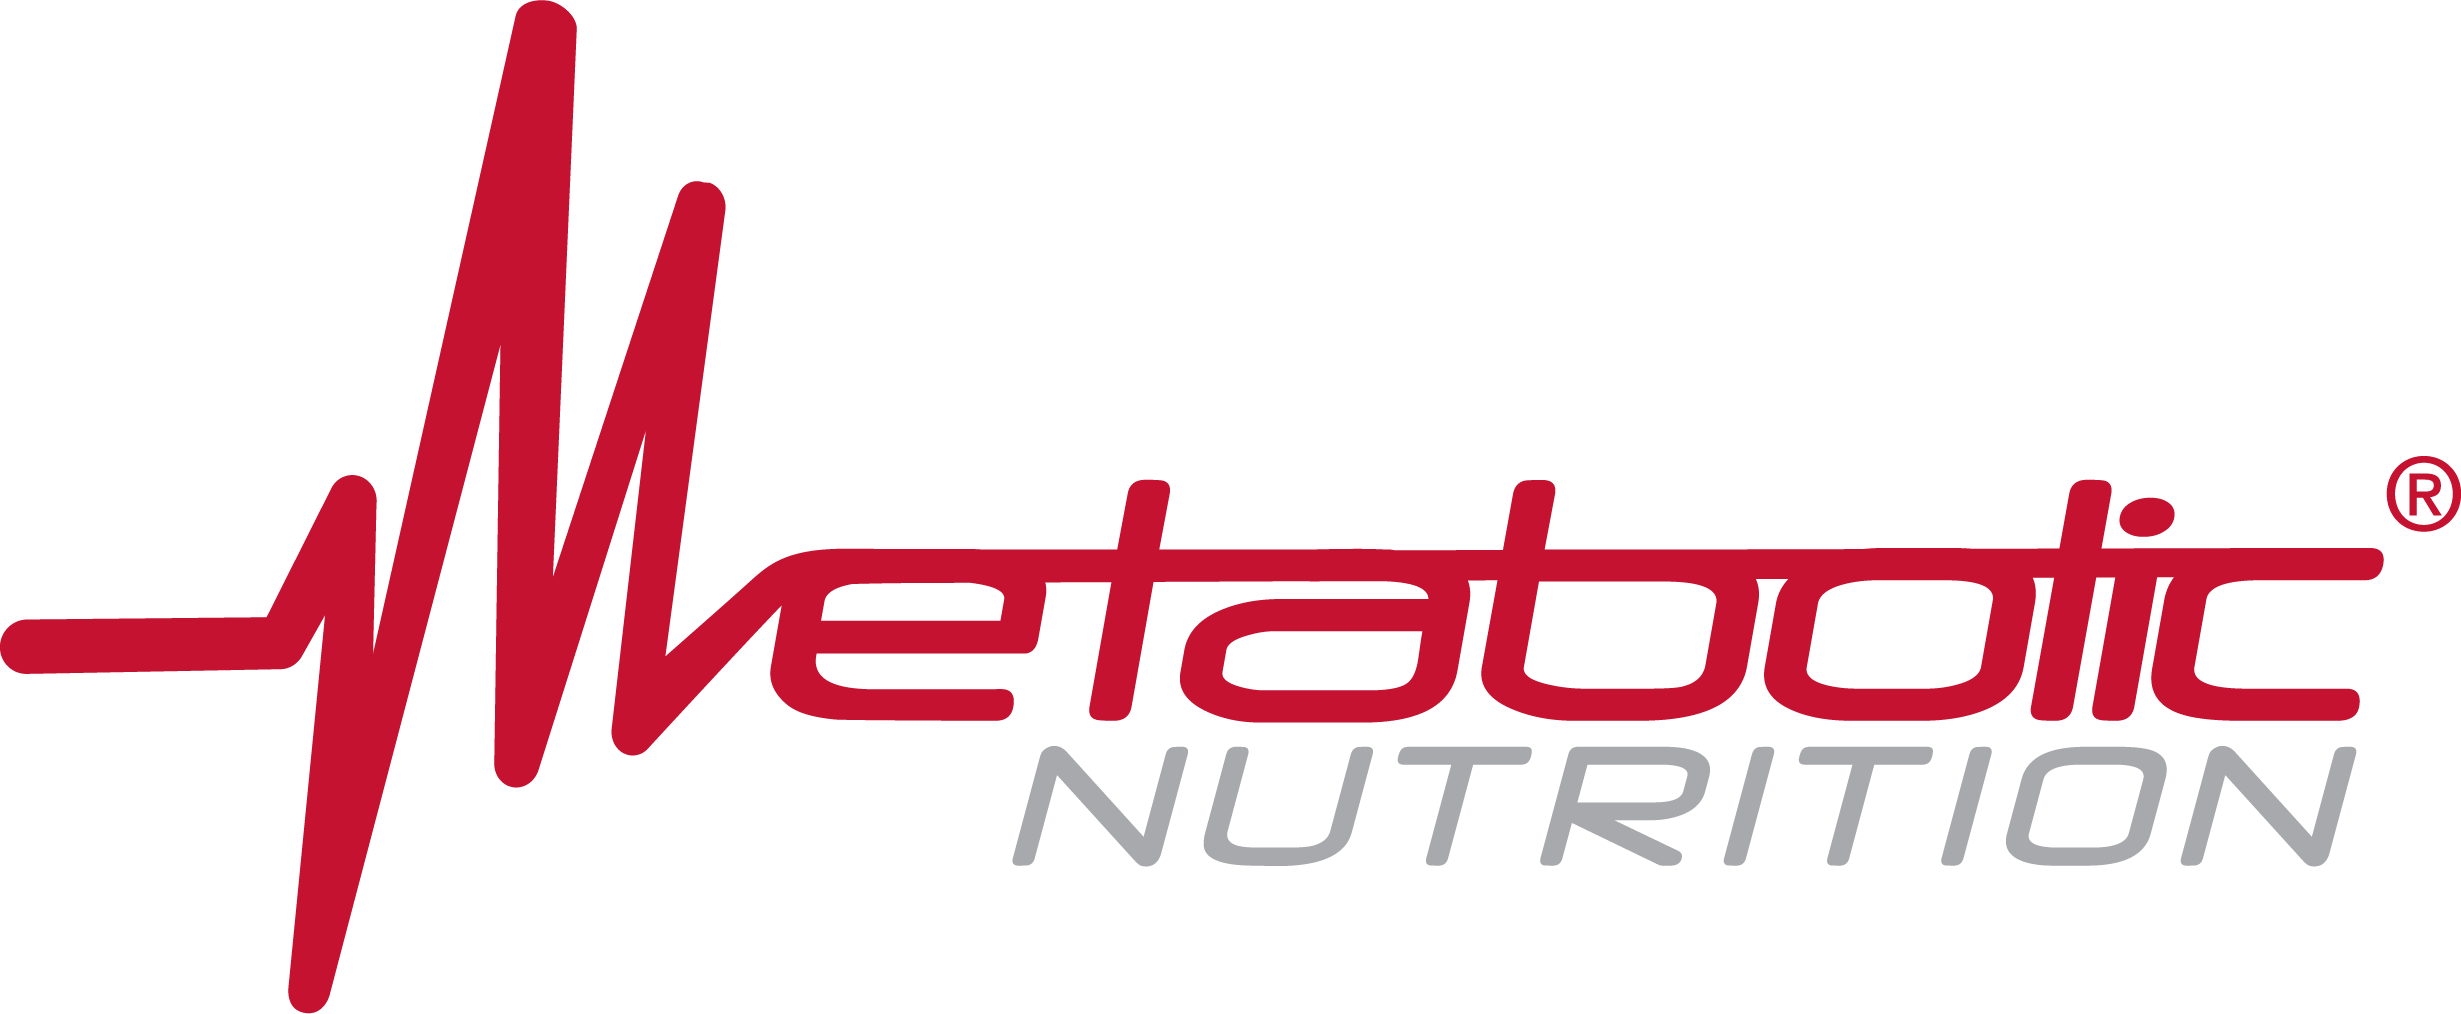 Metabolic_Vector_Logo